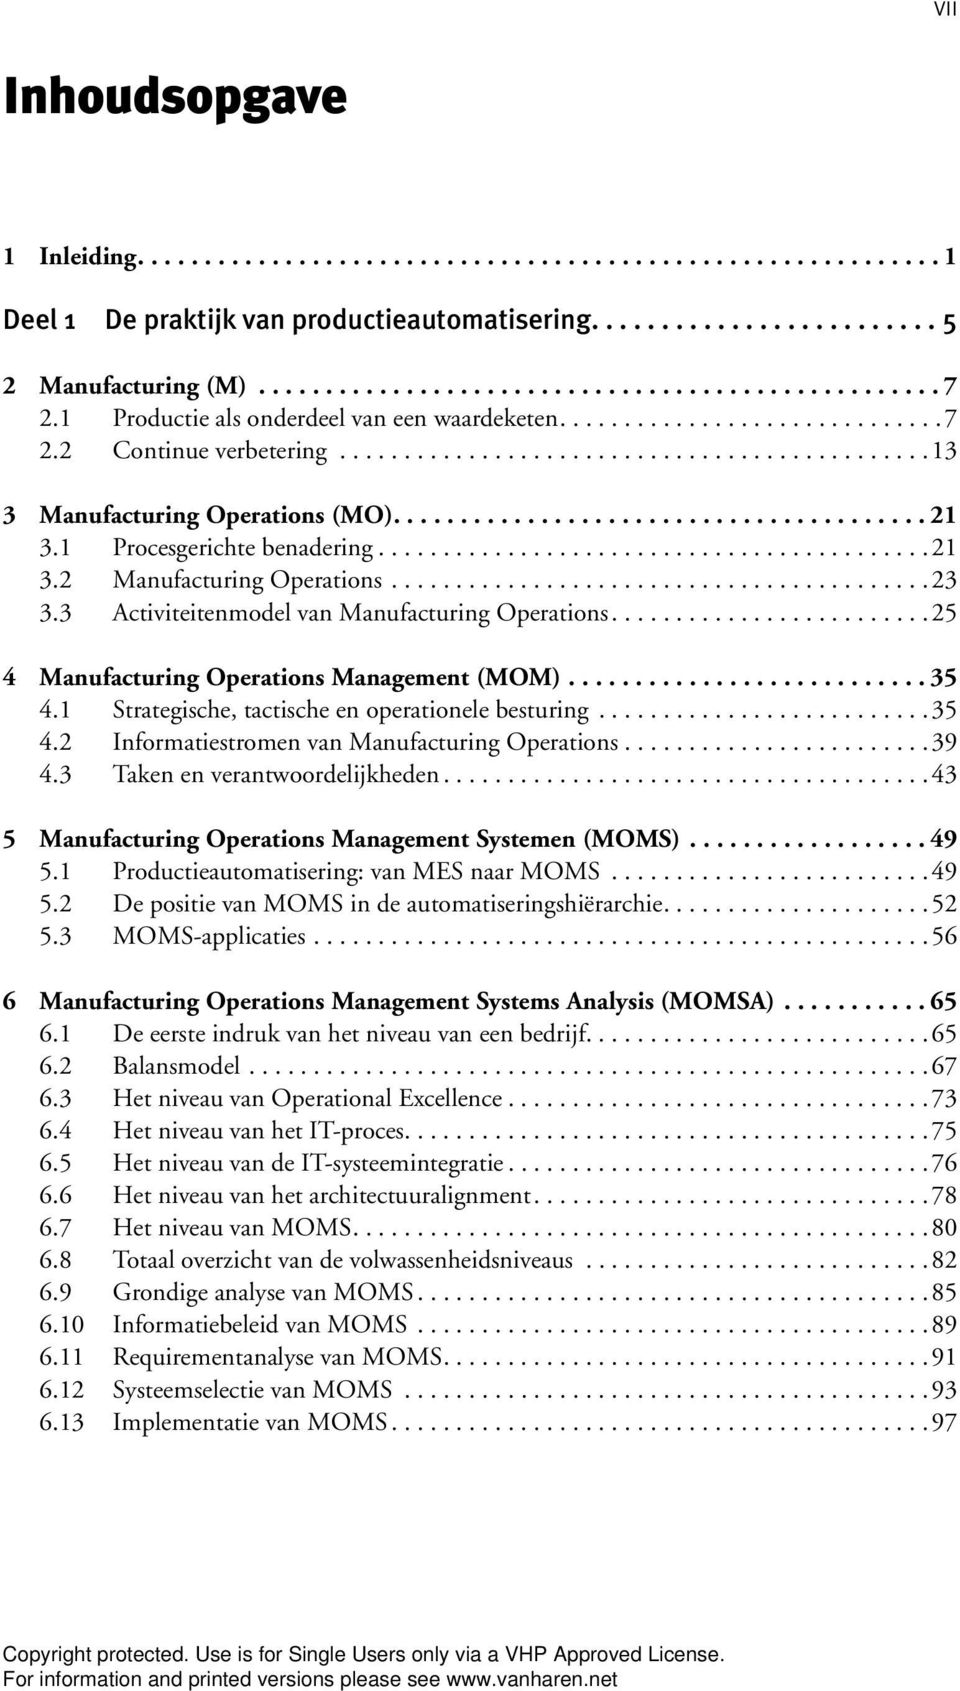 3 Activiteitenmodel van Manufacturing Operations.........................25 4 Manufacturing Operations Management (MOM) 35 4.1 Strategische, tactische en operationele besturing..........................35 4.2 Informatiestromen van Manufacturing Operations.